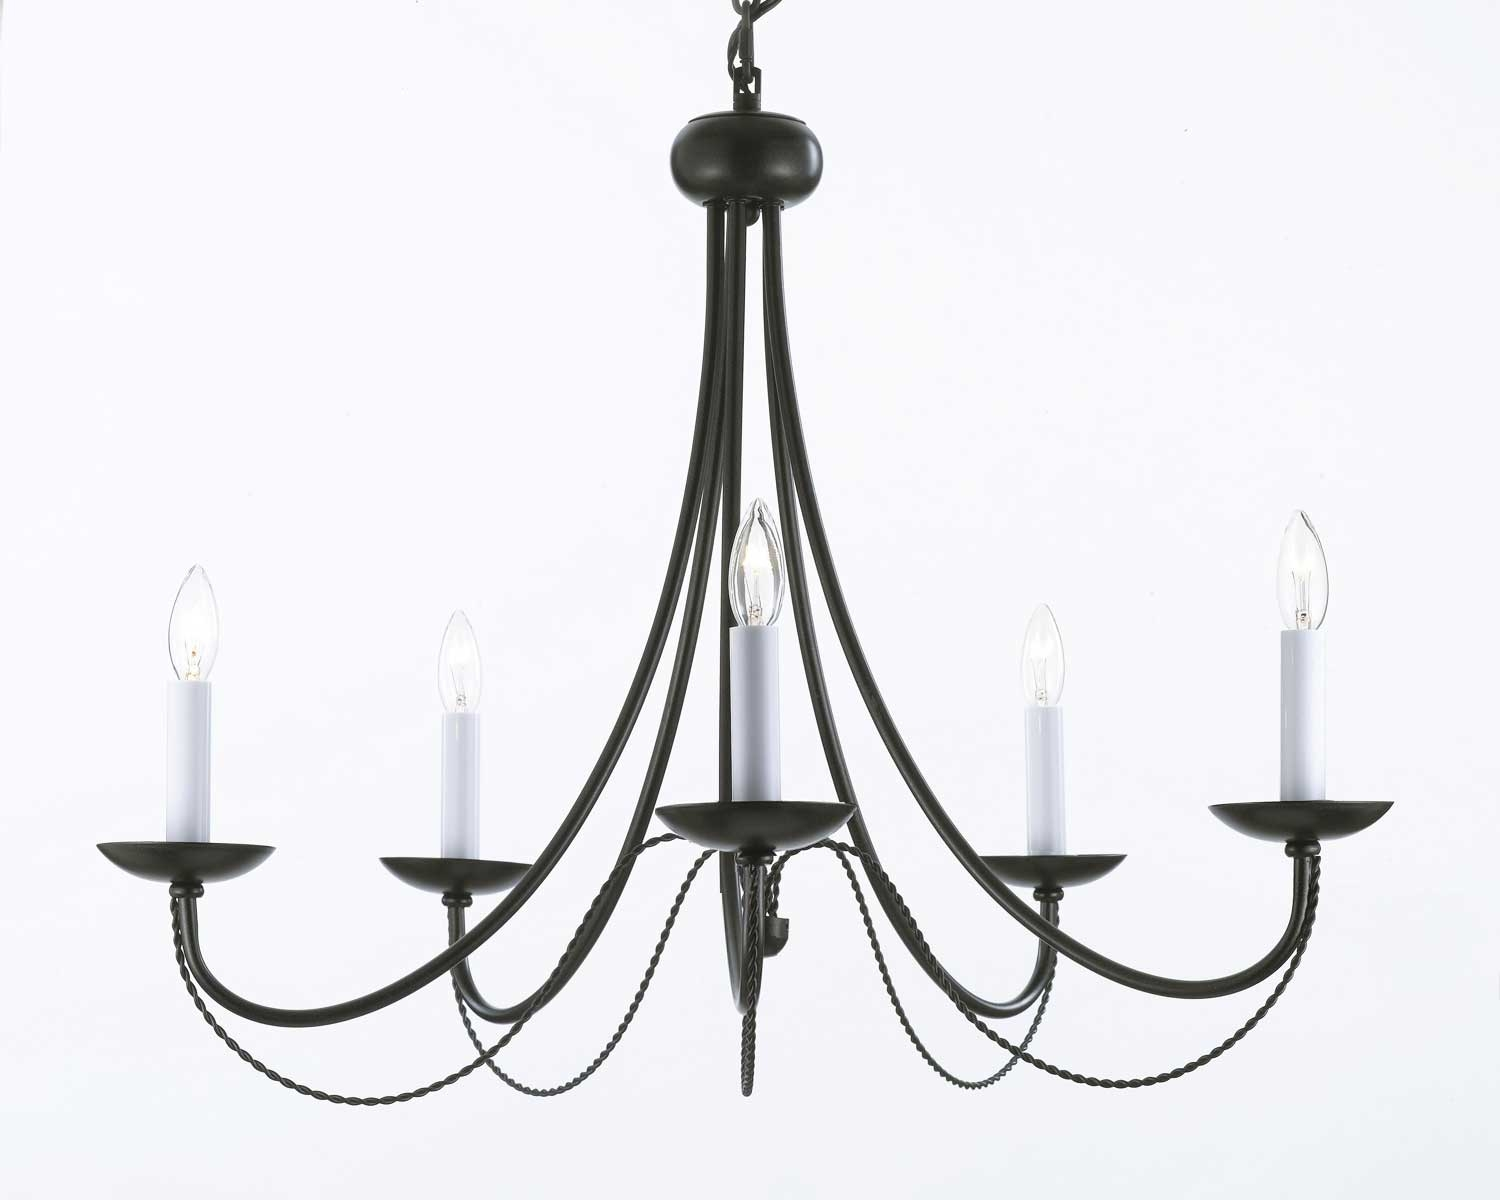 Popular Photo of Wrought Iron Chandelier